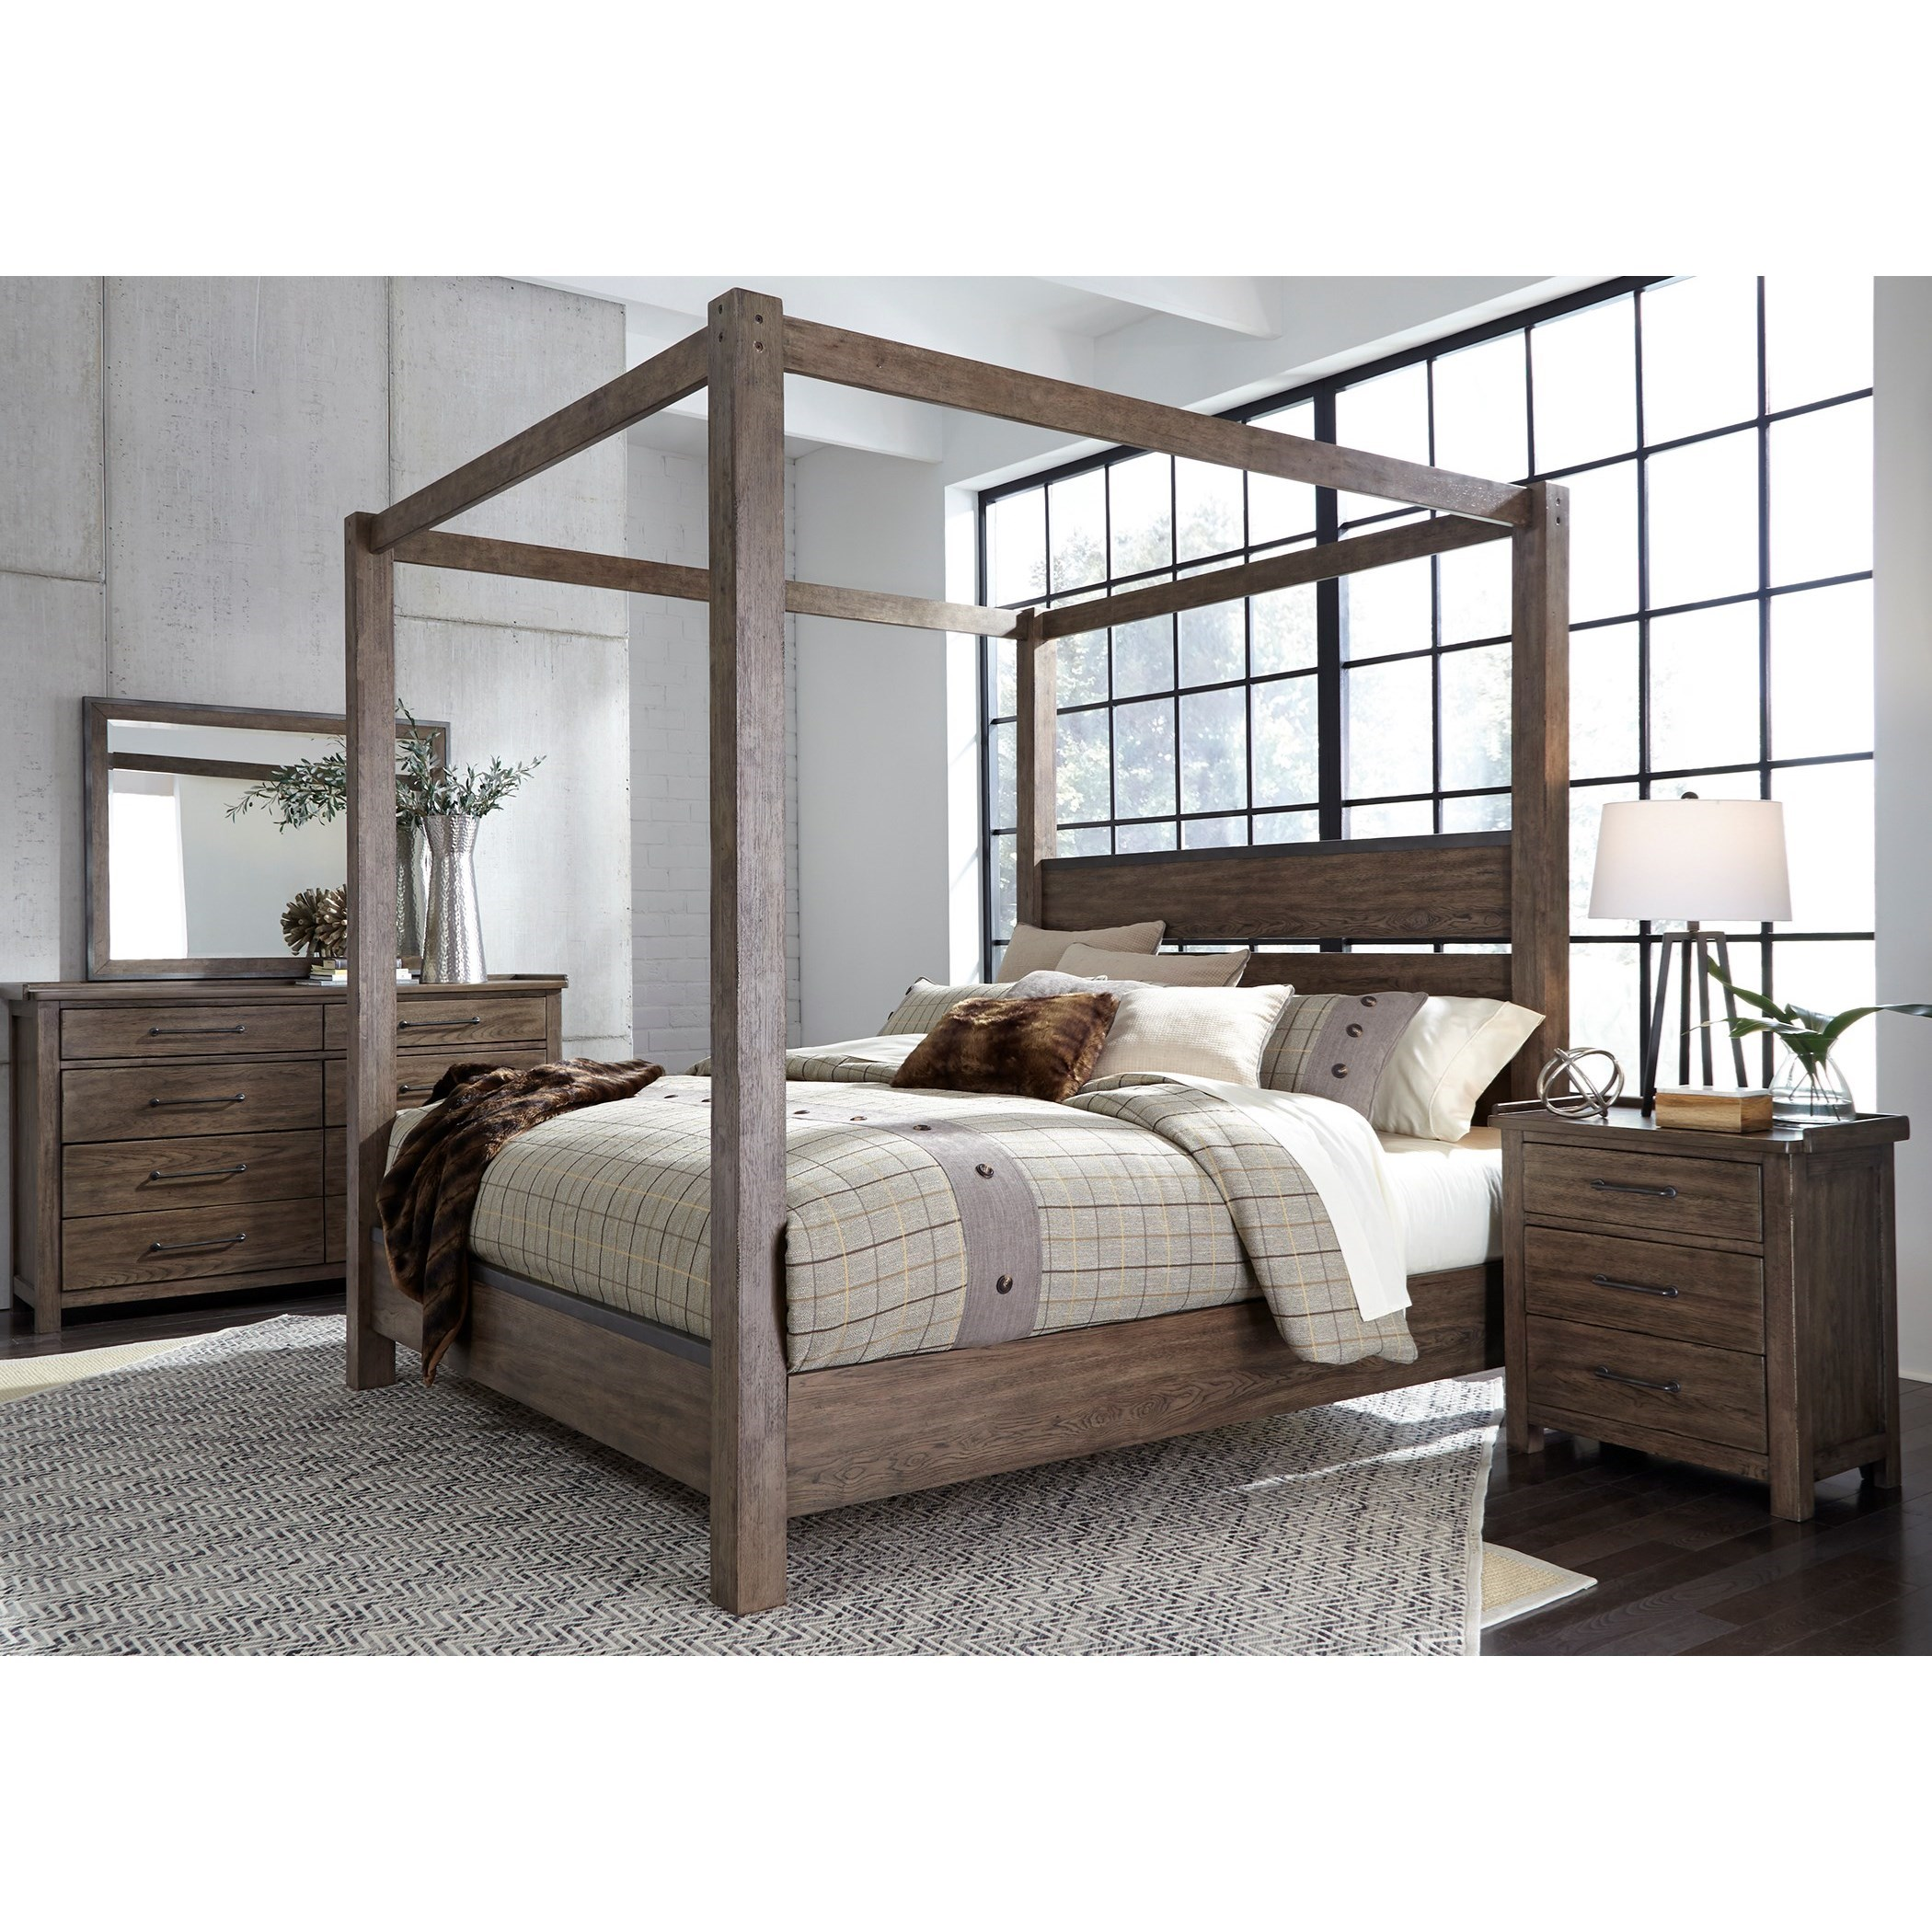 Sonoma Road King Bedroom Group  by Liberty Furniture at Northeast Factory Direct